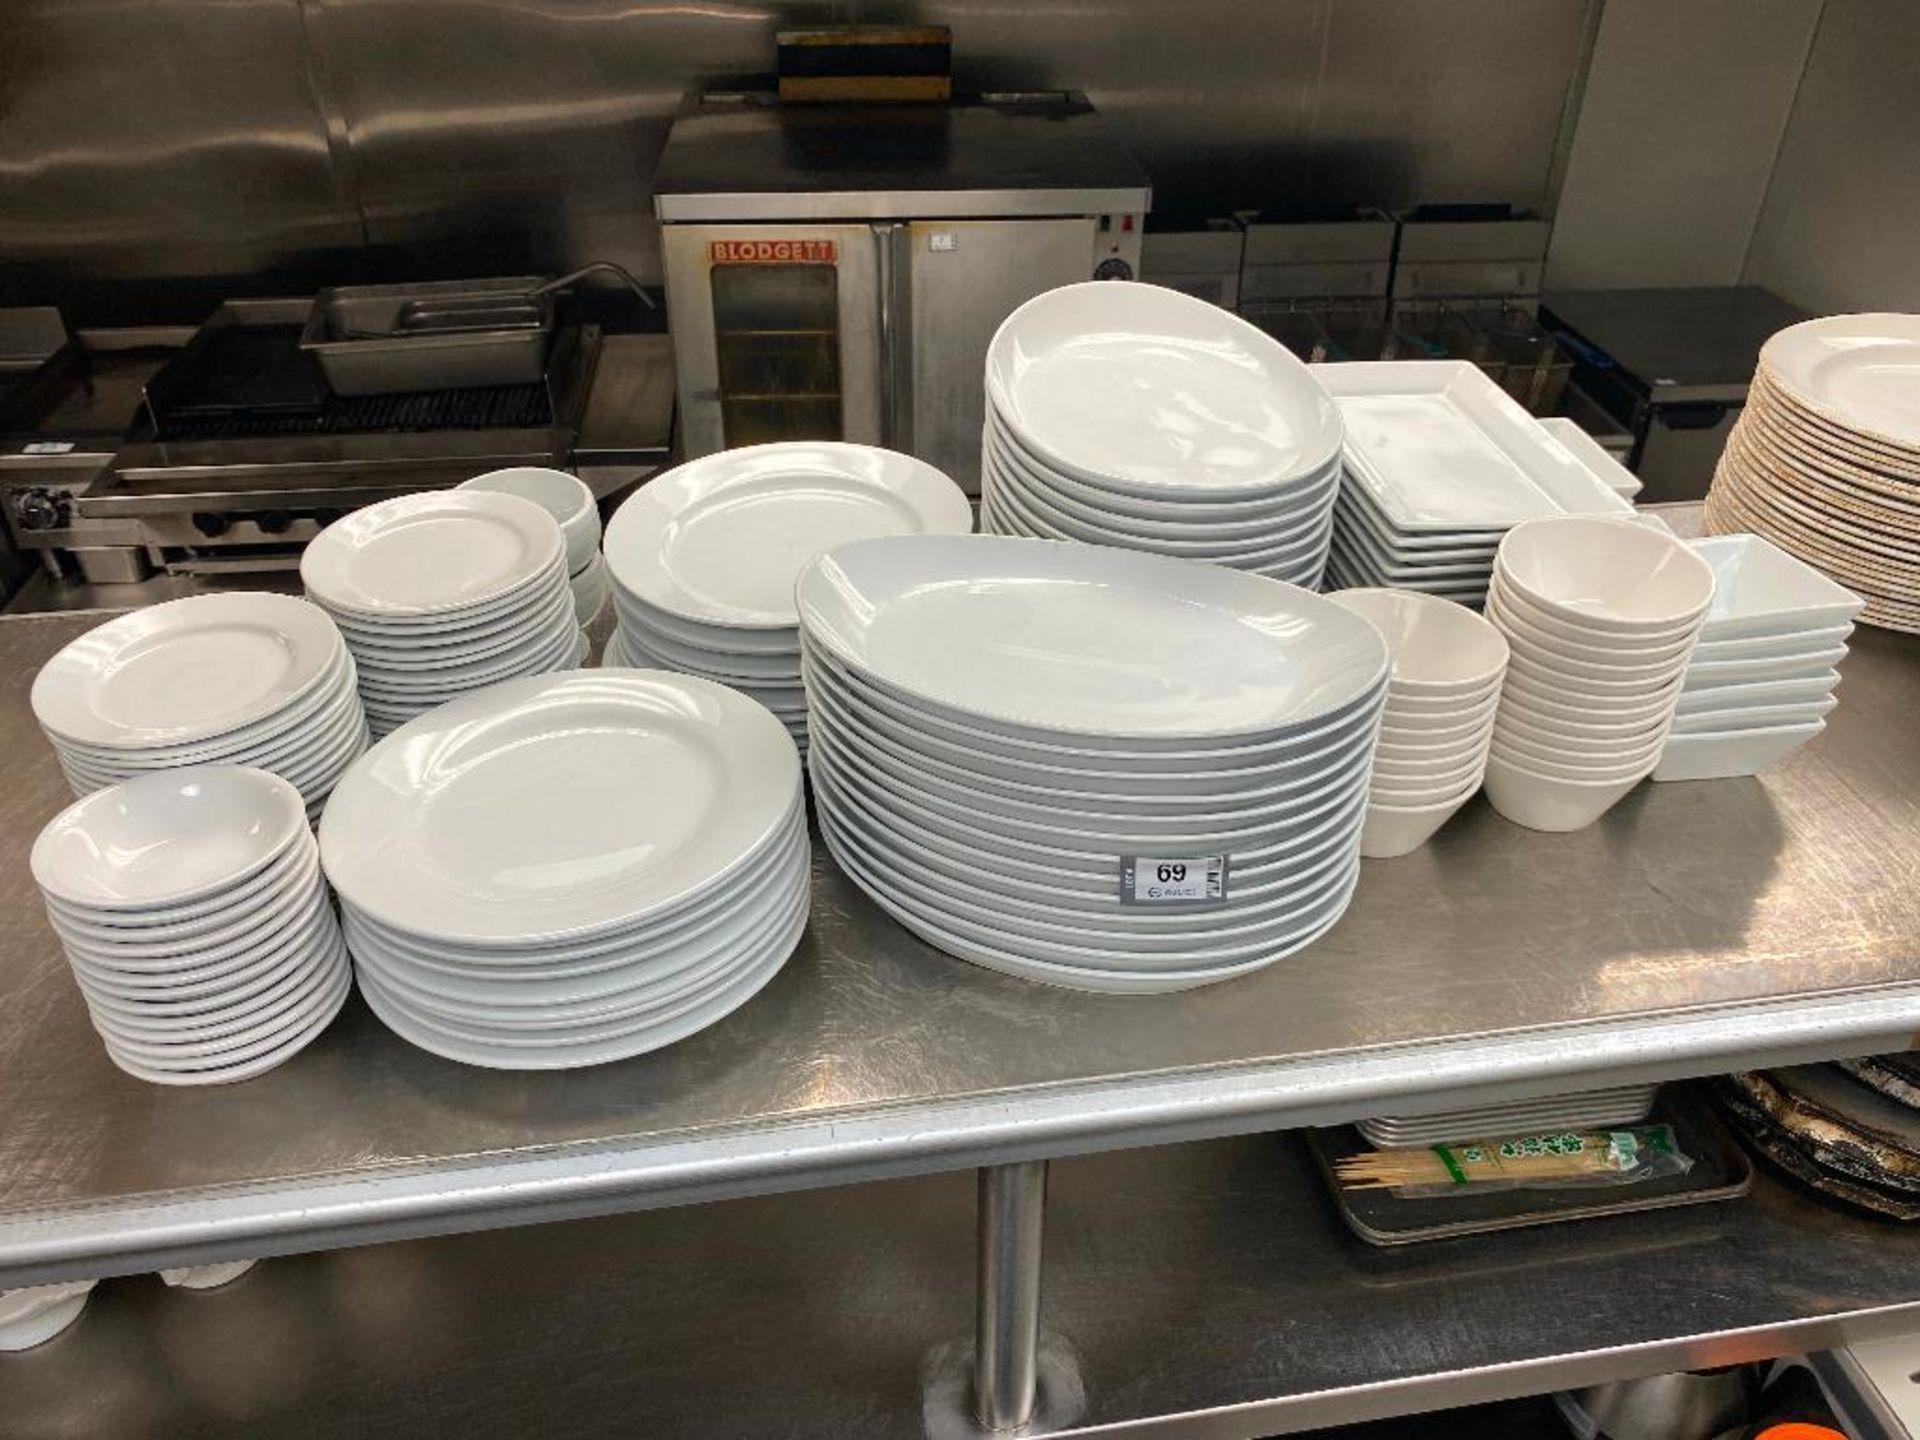 LOT OF ASSORTED DINNERWARE INCLUDING: PLATES, BOWLS, SERVING TRAY